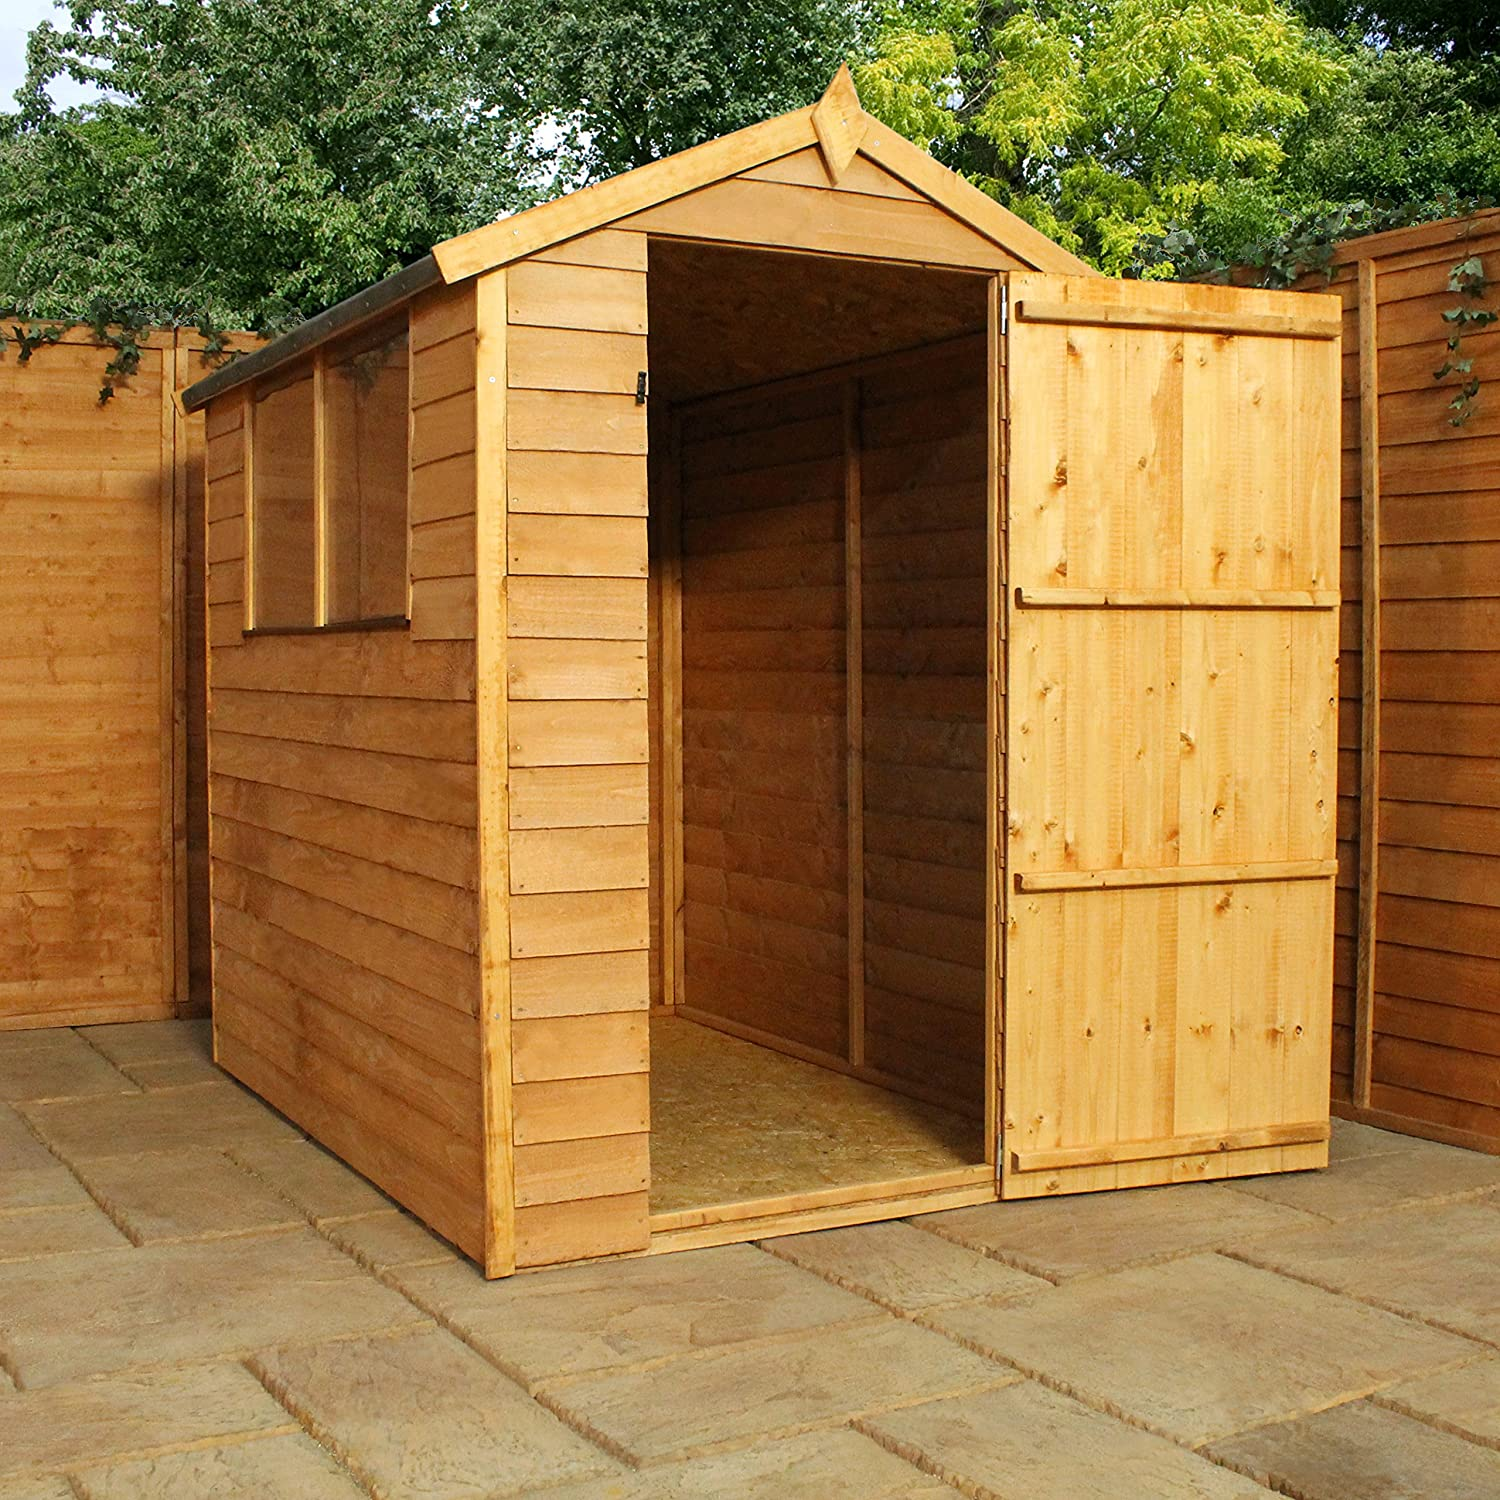 Bon 6x4 Wooden Overlap Garden Storage Shed, Windows, Single Door, OSB, Apex  Roof, 6ft 4ft Free 3 5 Day Delivery + 10 Year Guarantee U0026 0% Finance* From  Waltons: ...